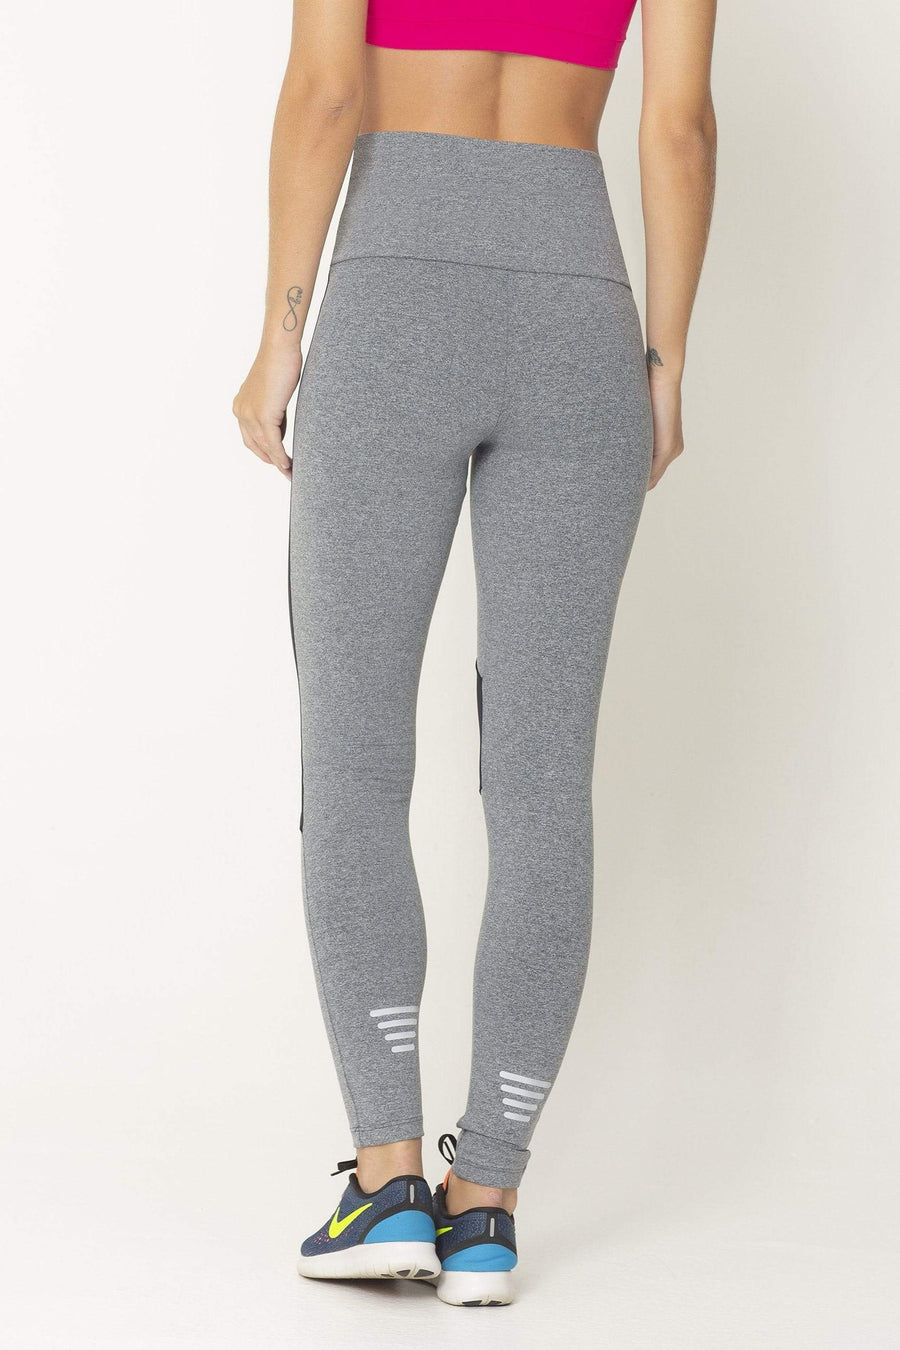 Mix Detox High Up Legging - Sam's Fitness Goods